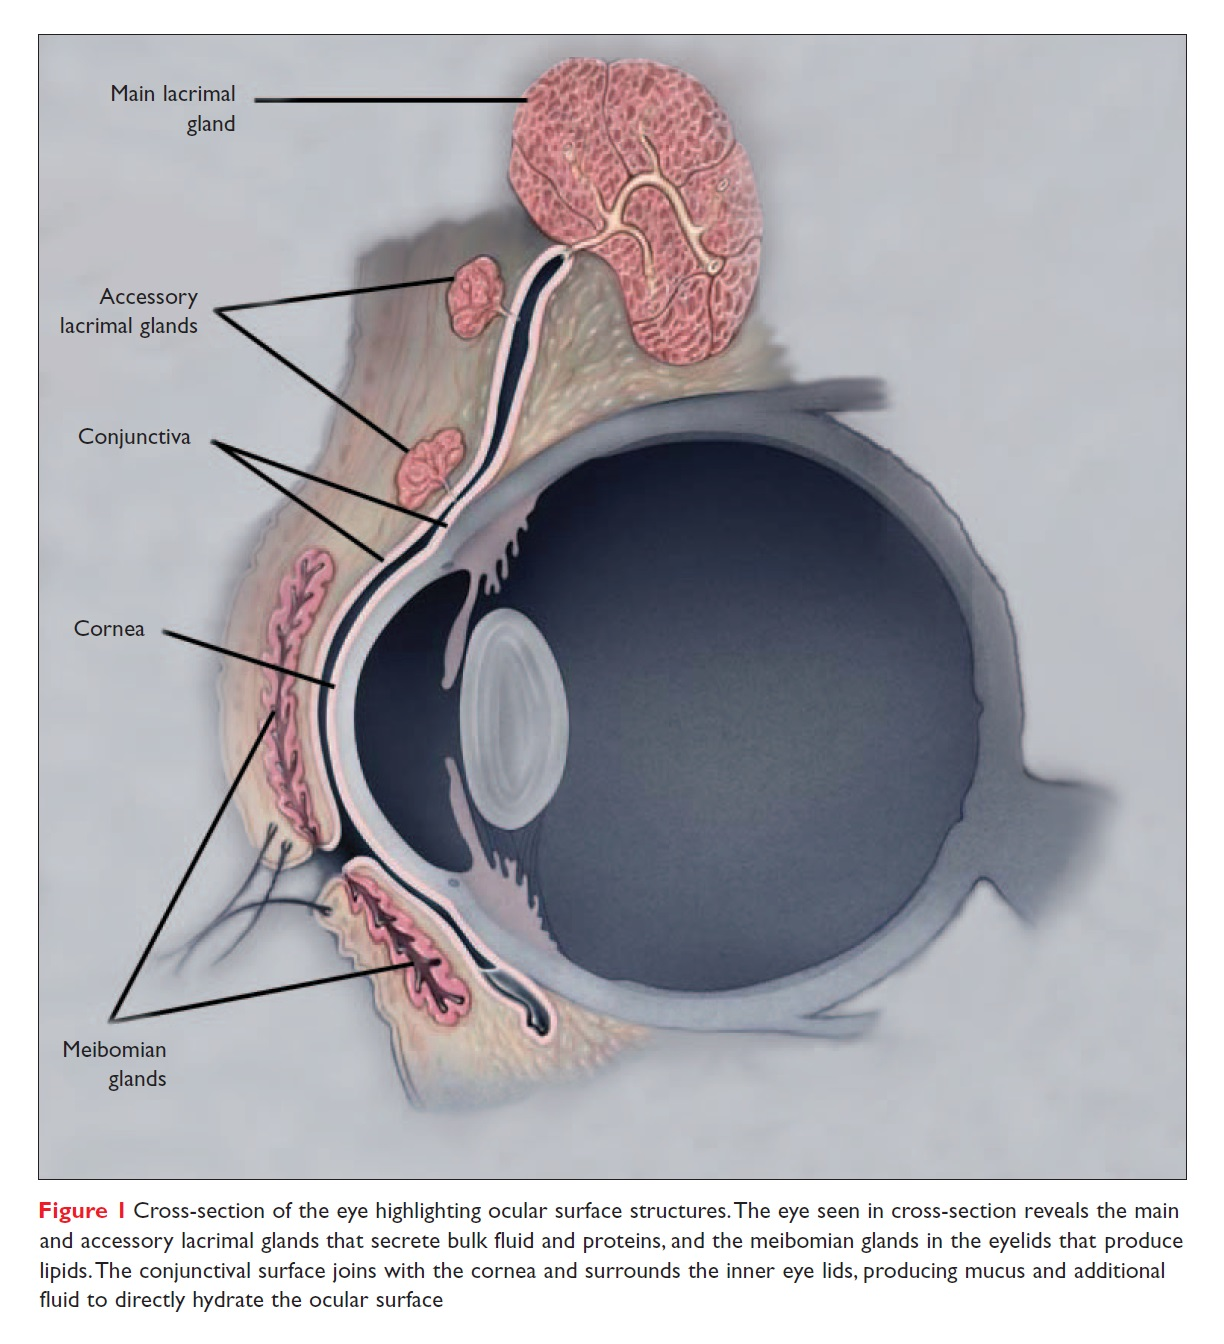 Figure 1 Cross-section of the eye highlighting ocular surface structures